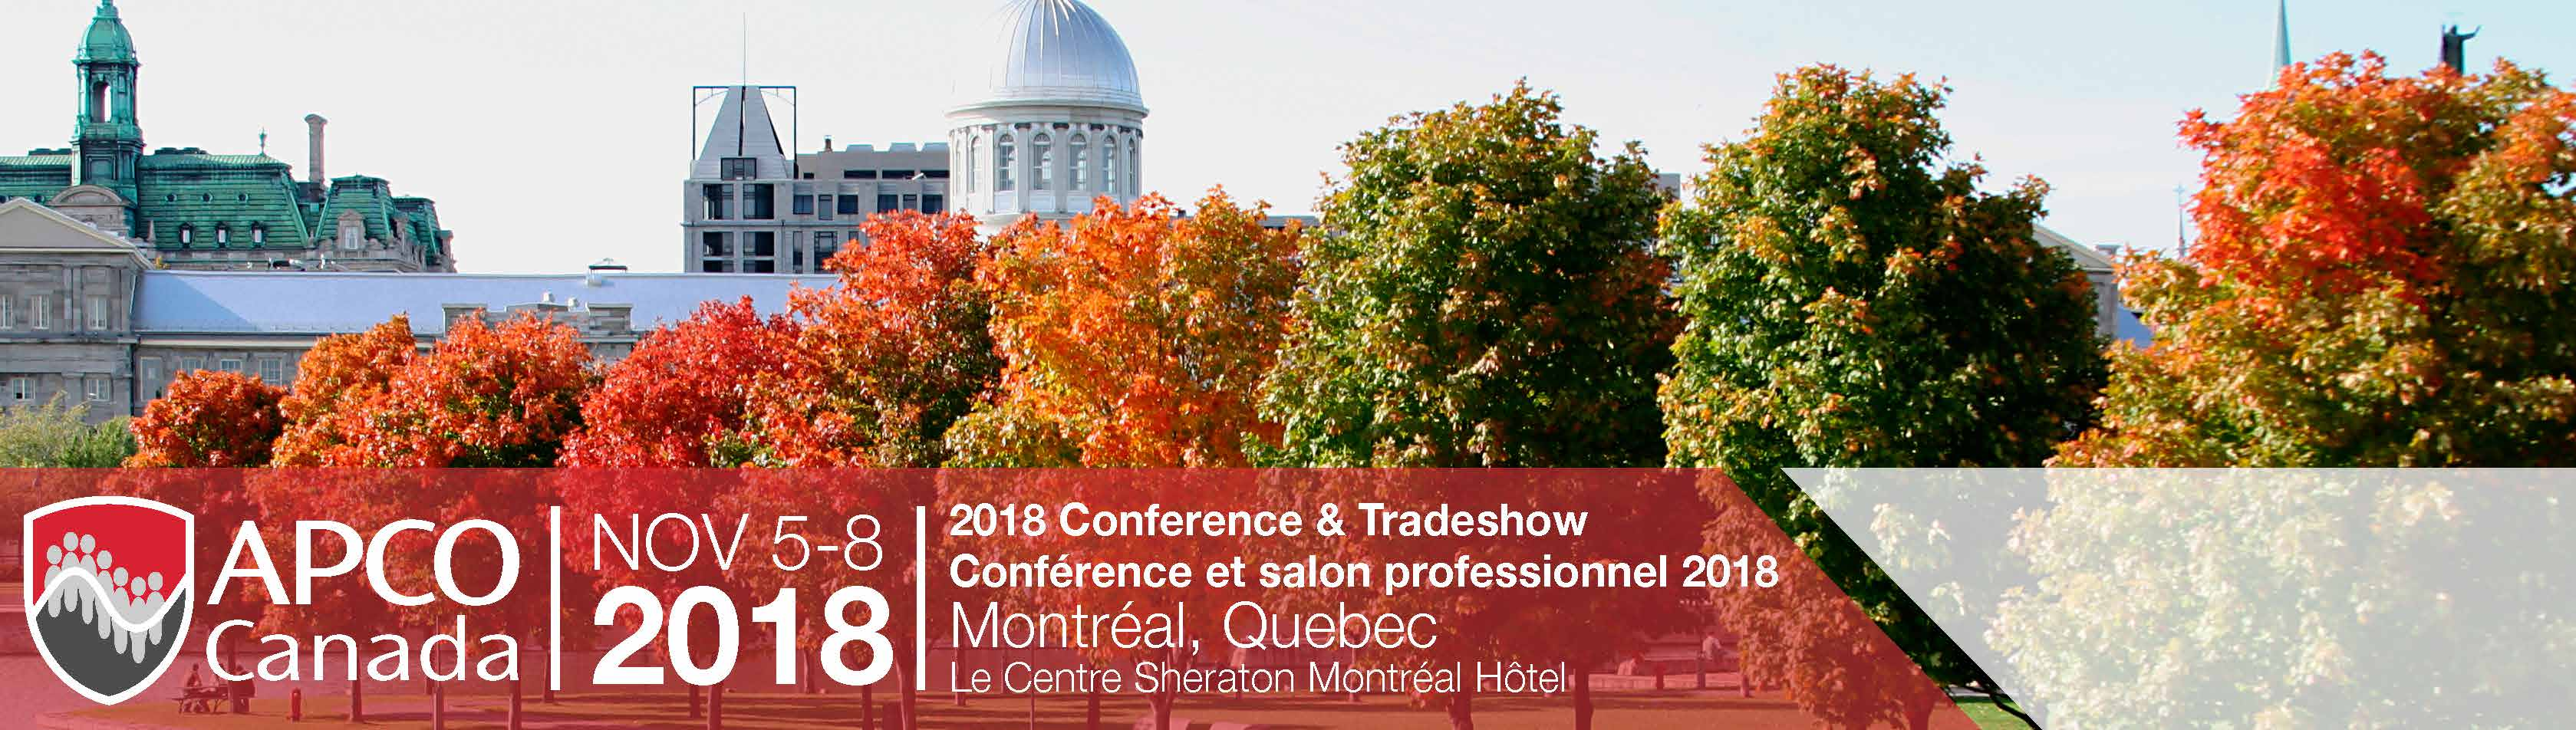 APCO Canada Conference & Tradeshow - Awards Submission